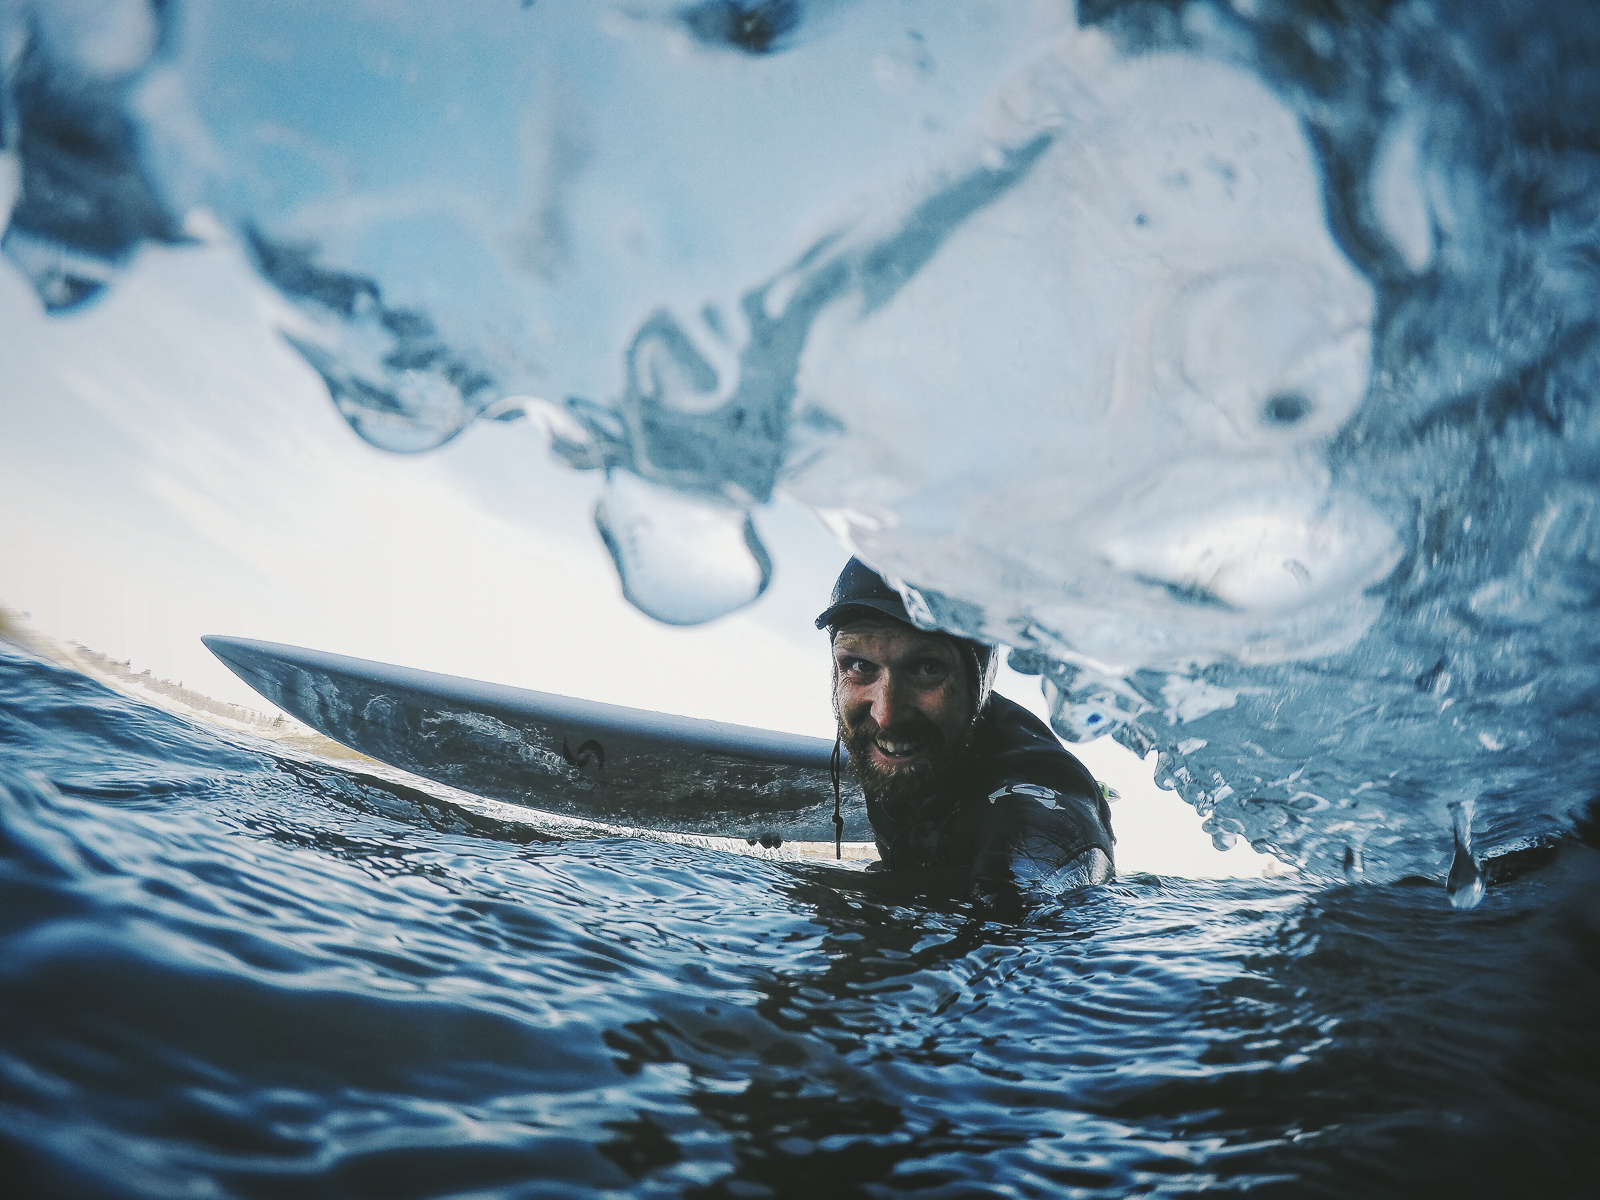 Adventure always awaits. John Rathwell captures a self portrait while out surfing icy waters. Captured with GoPro on Joby Action Grip.